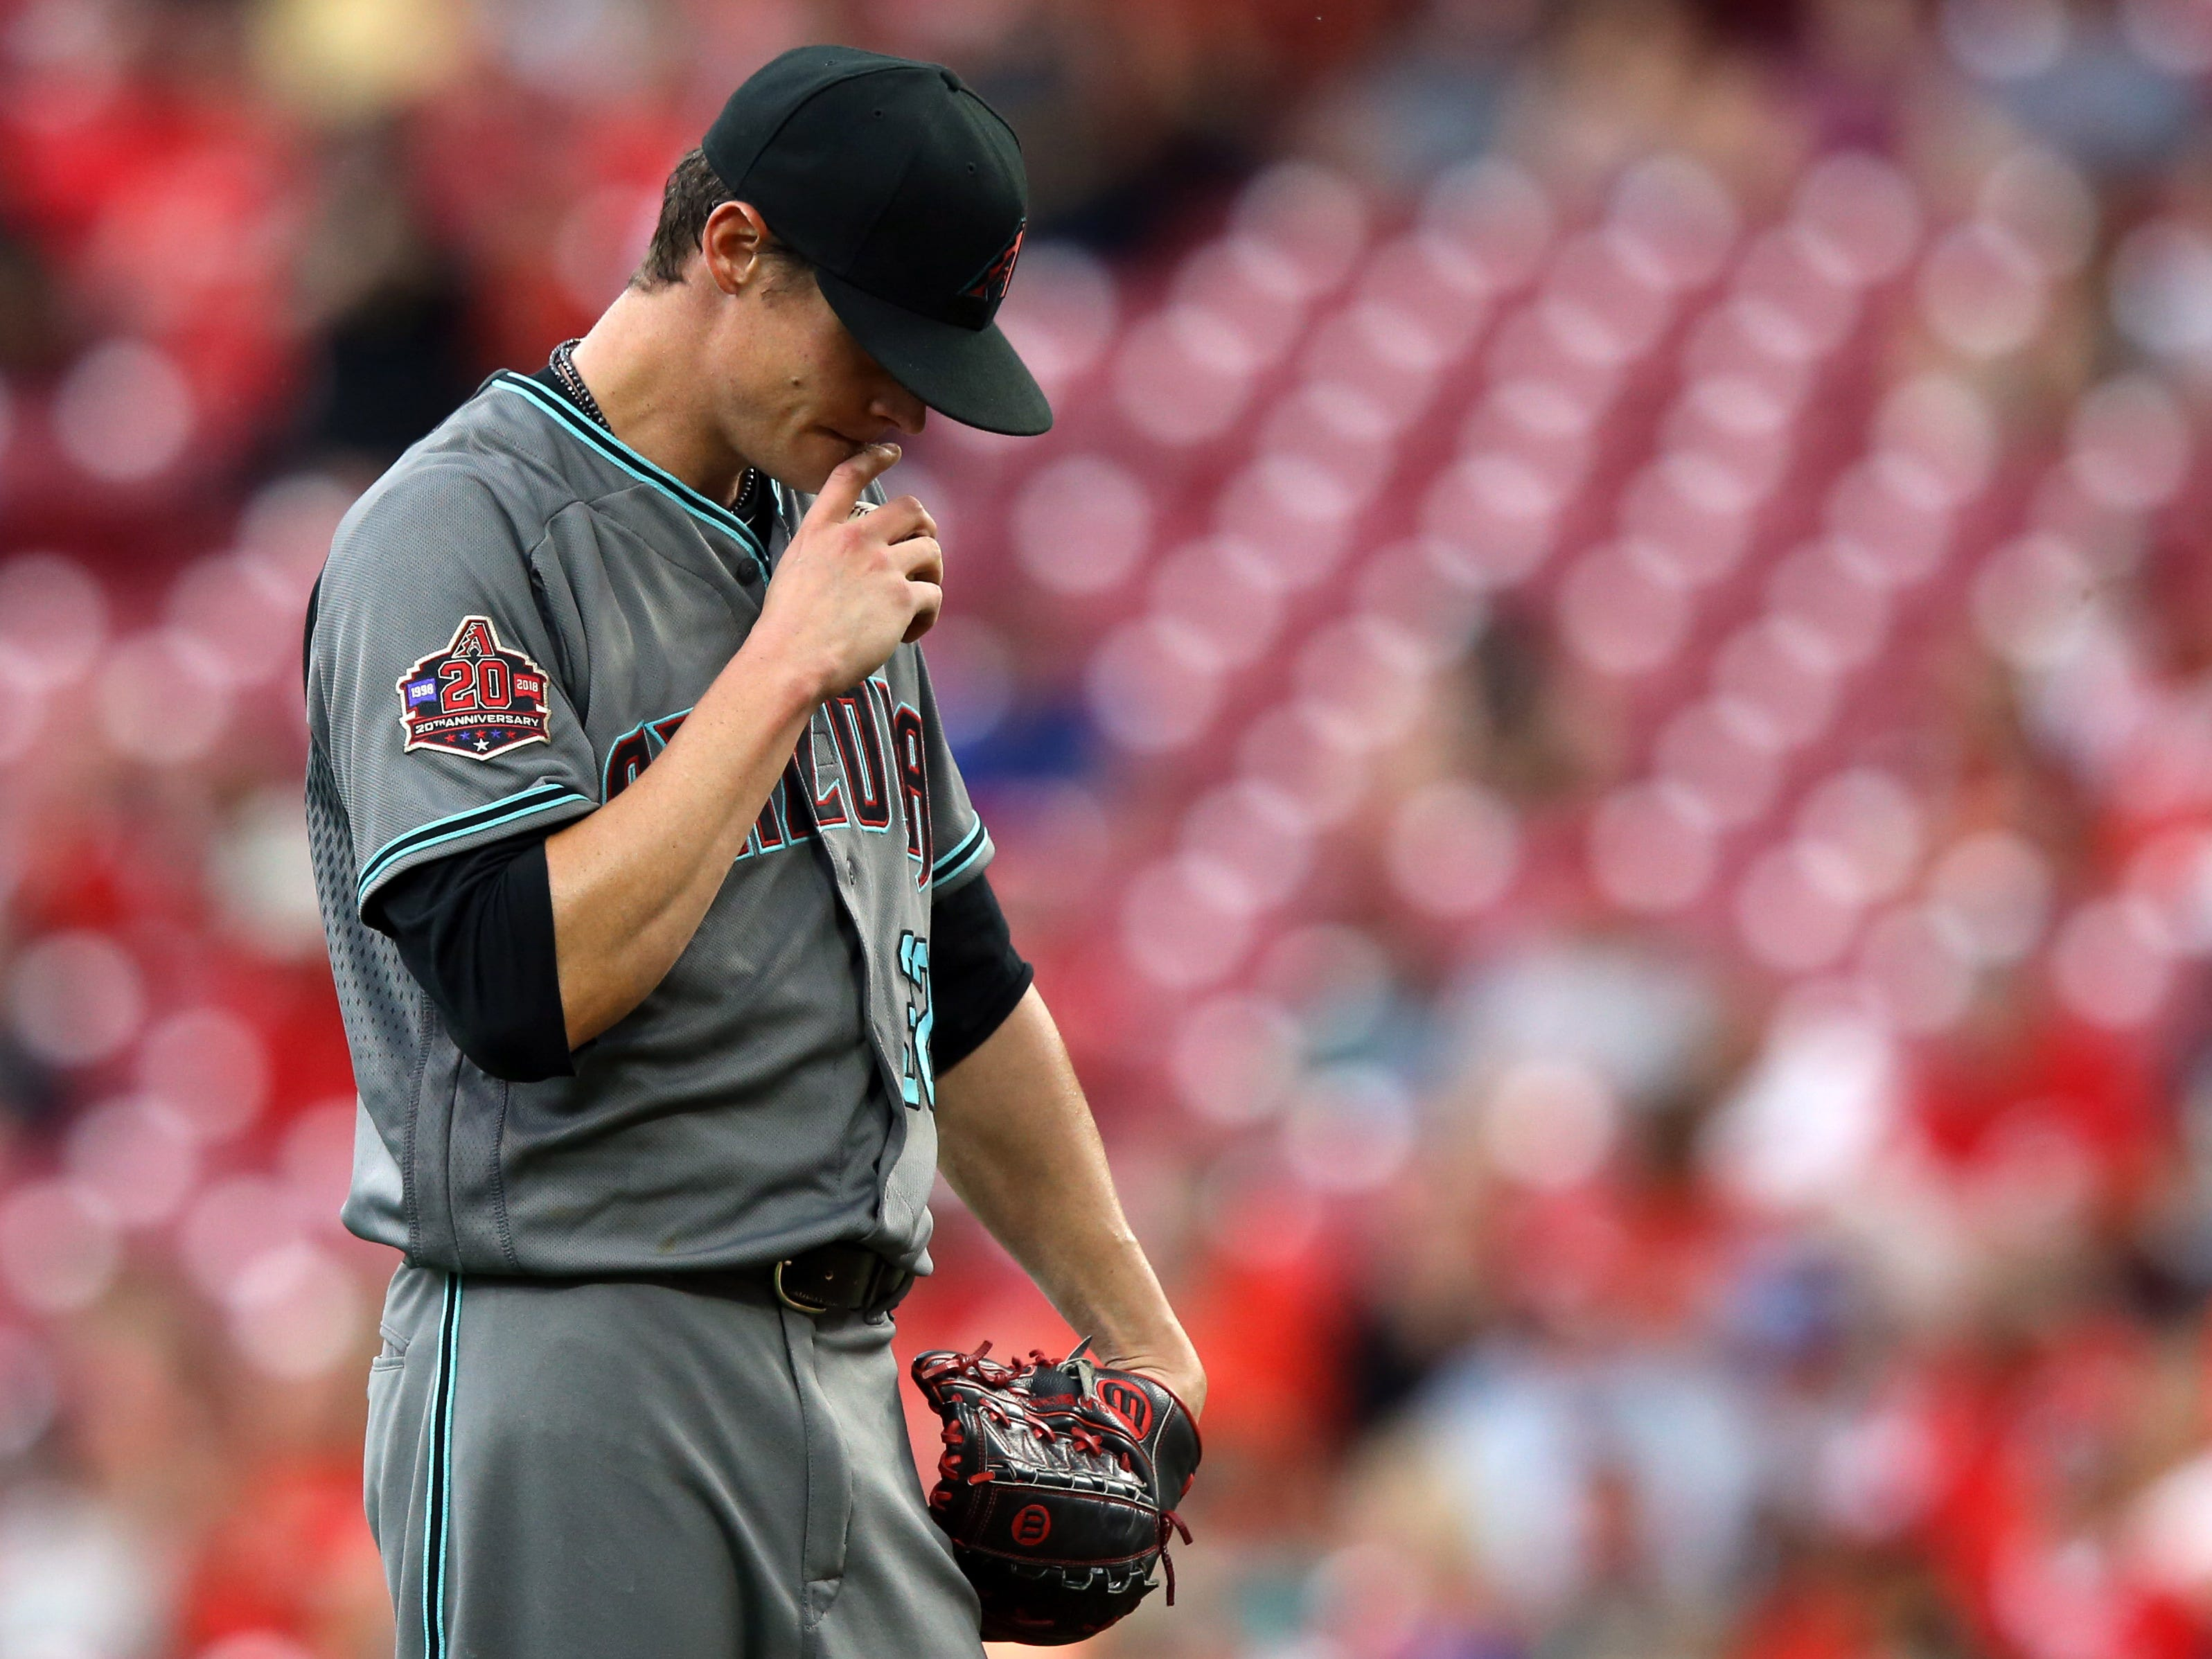 Aug 10, 2018; Cincinnati, OH, USA; Arizona Diamondbacks starting pitcher Clay Buchholz (32) prepares to throw against against the Cincinnati Reds in the first inning at Great American Ball Park.